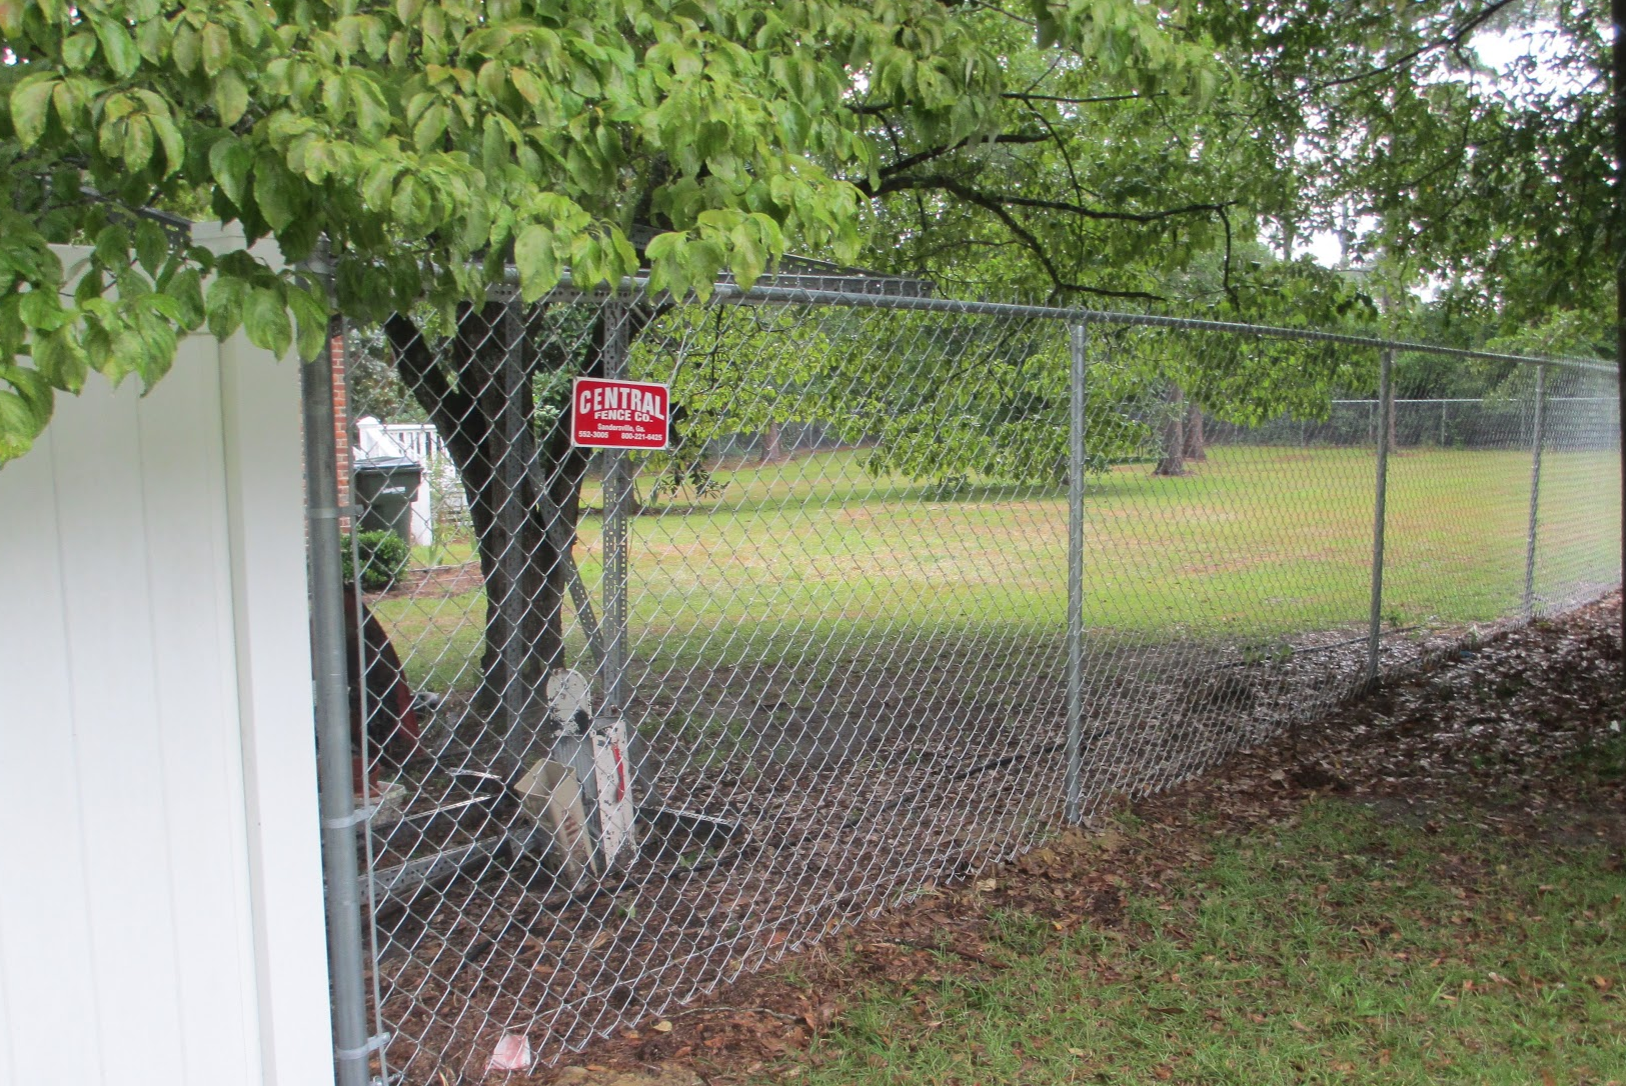 Chain Link Fence in Backyard